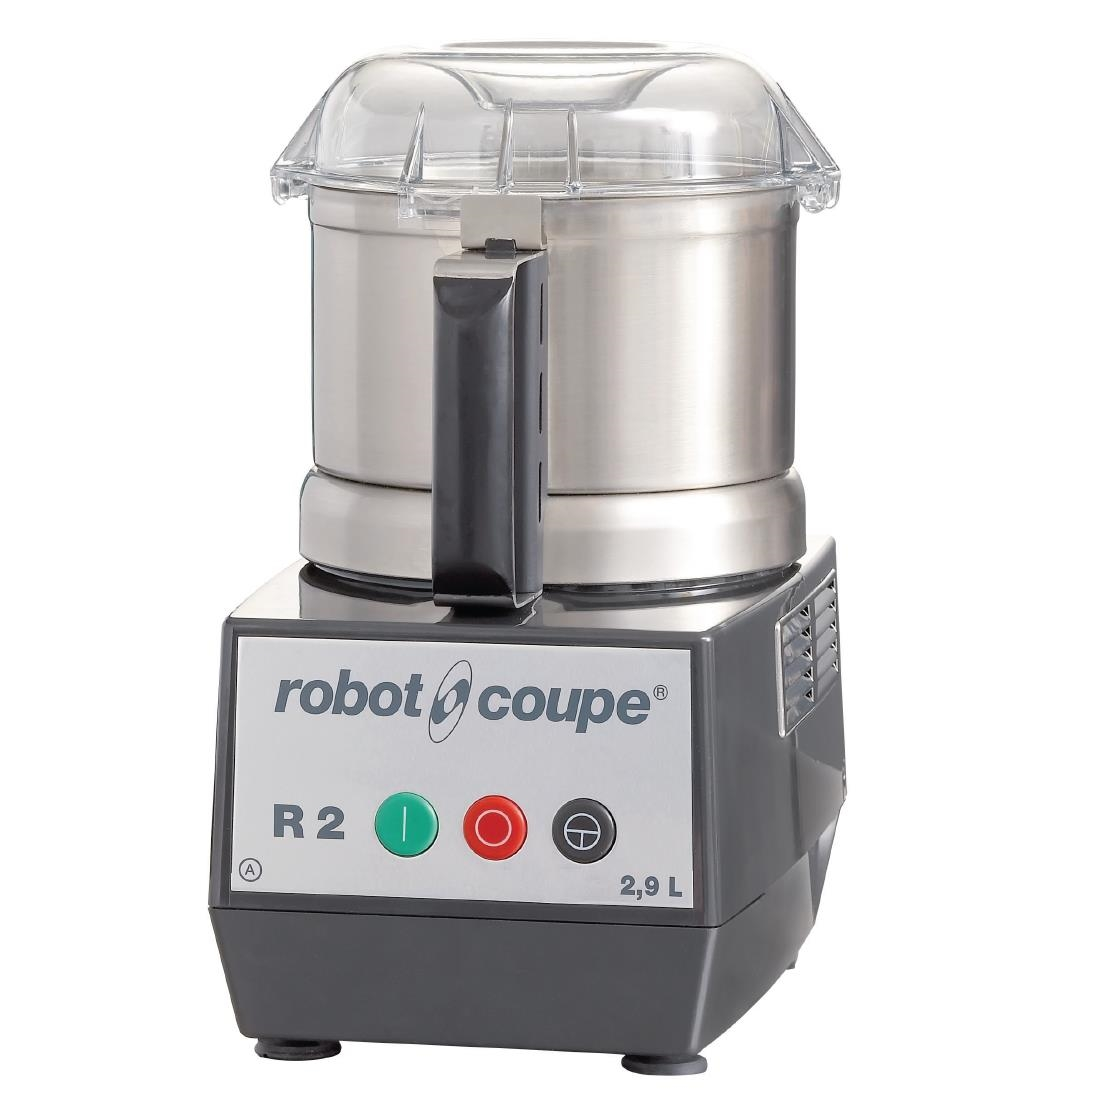 Image of Robot Coupe Bowl Cutter R2